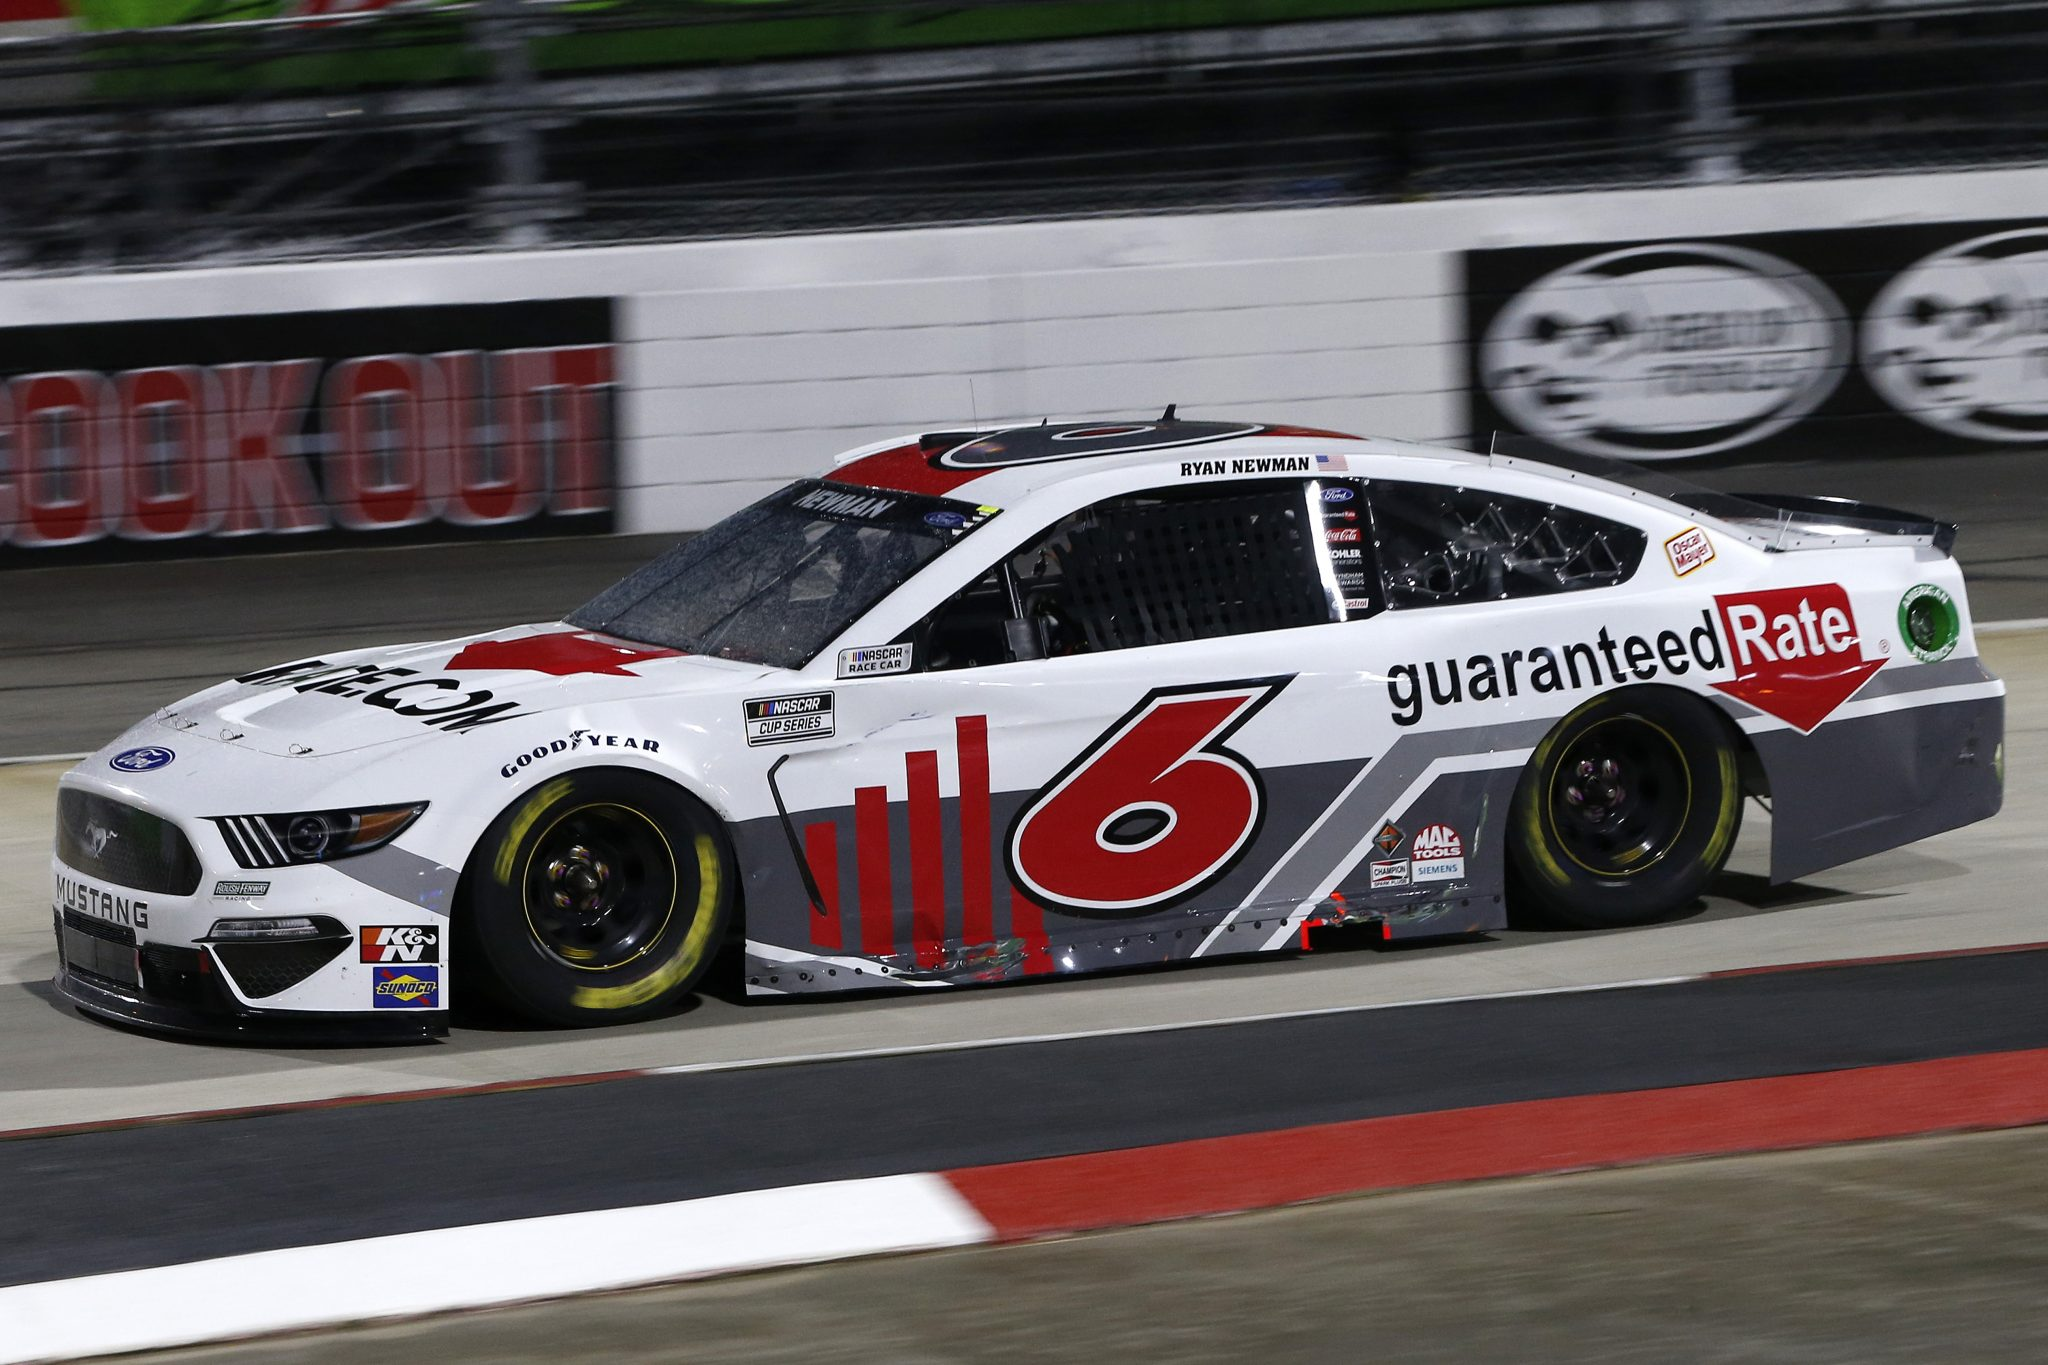 MARTINSVILLE, VIRGINIA - APRIL 10: Ryan Newman, driver of the #6 Guaranteed Rate Ford, drives during the NASCAR Cup Series Blue-Emu Maximum Pain Relief 500 at Martinsville Speedway on April 10, 2021 in Martinsville, Virginia. (Photo by Brian Lawdermilk/Getty Images) | Getty Images